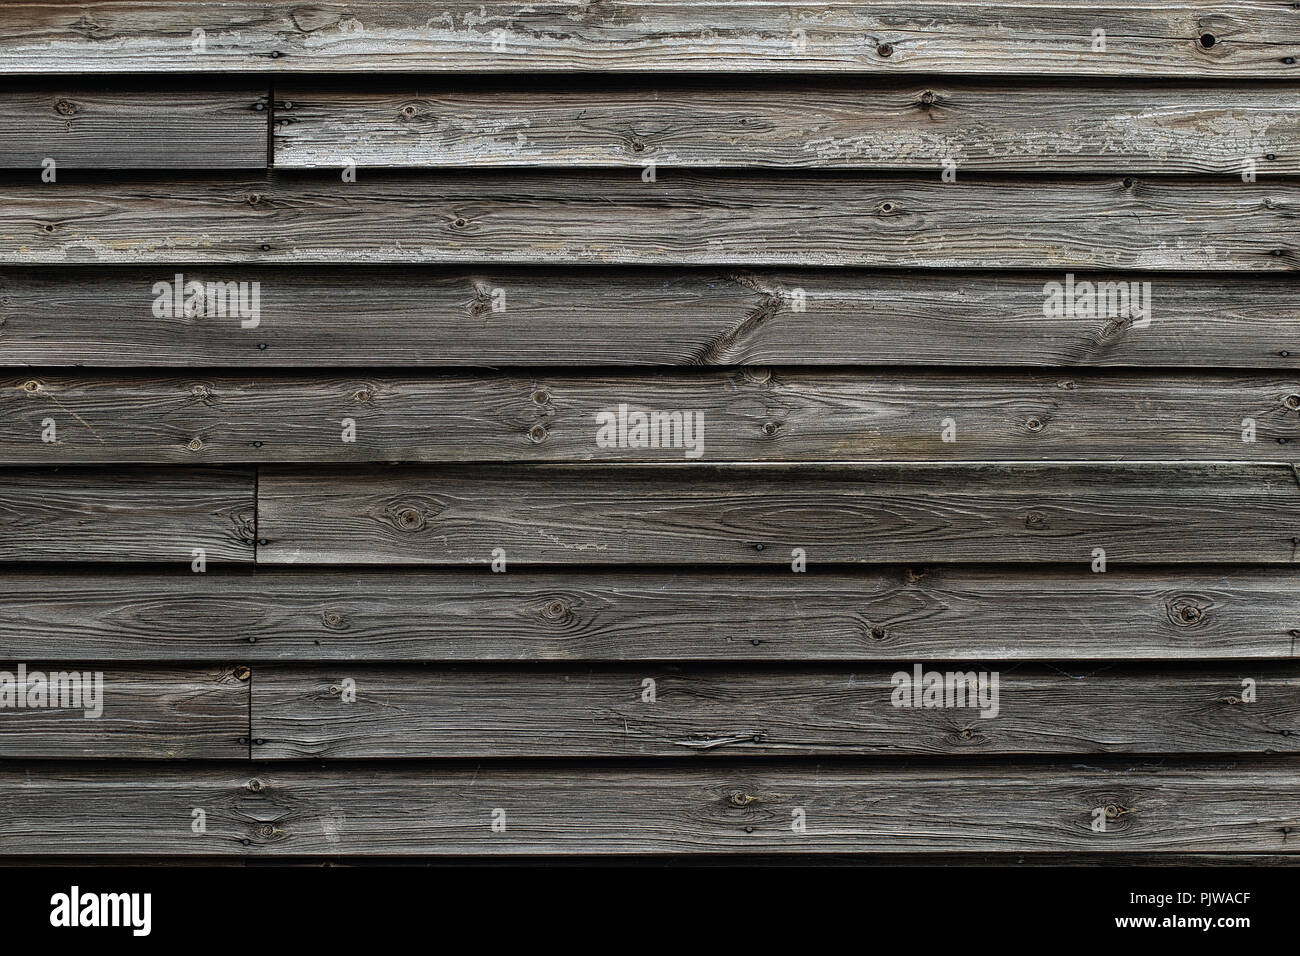 Panelled wood shed wall - Stock Image